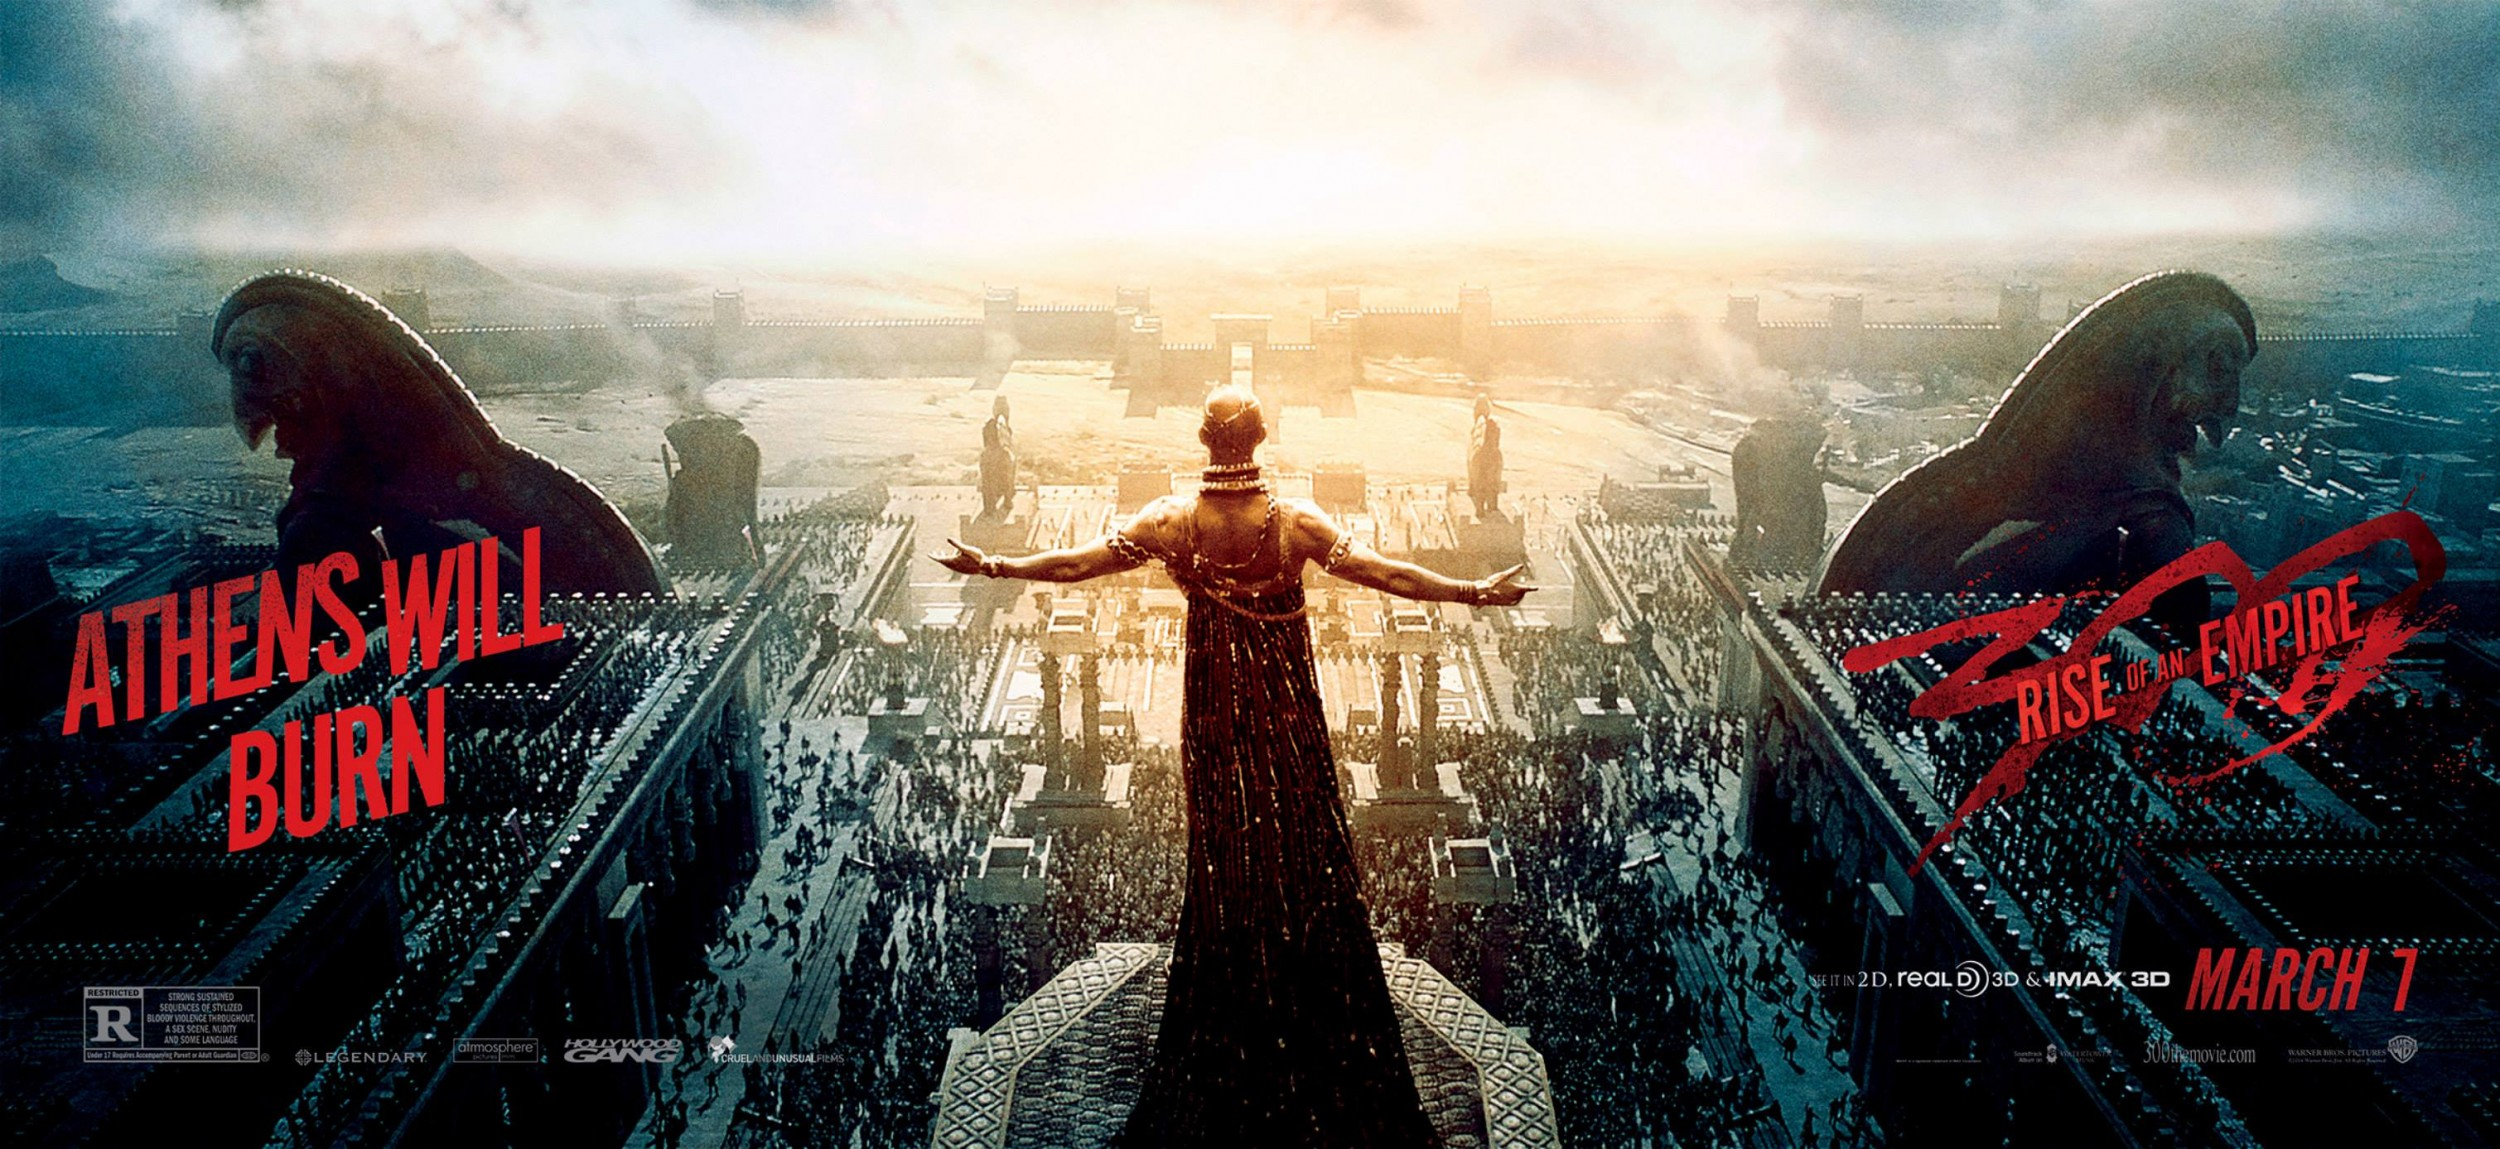 300 Rise of an Empire-Official Poster Banner PROMO BANNER-23JANEIRO2014-01